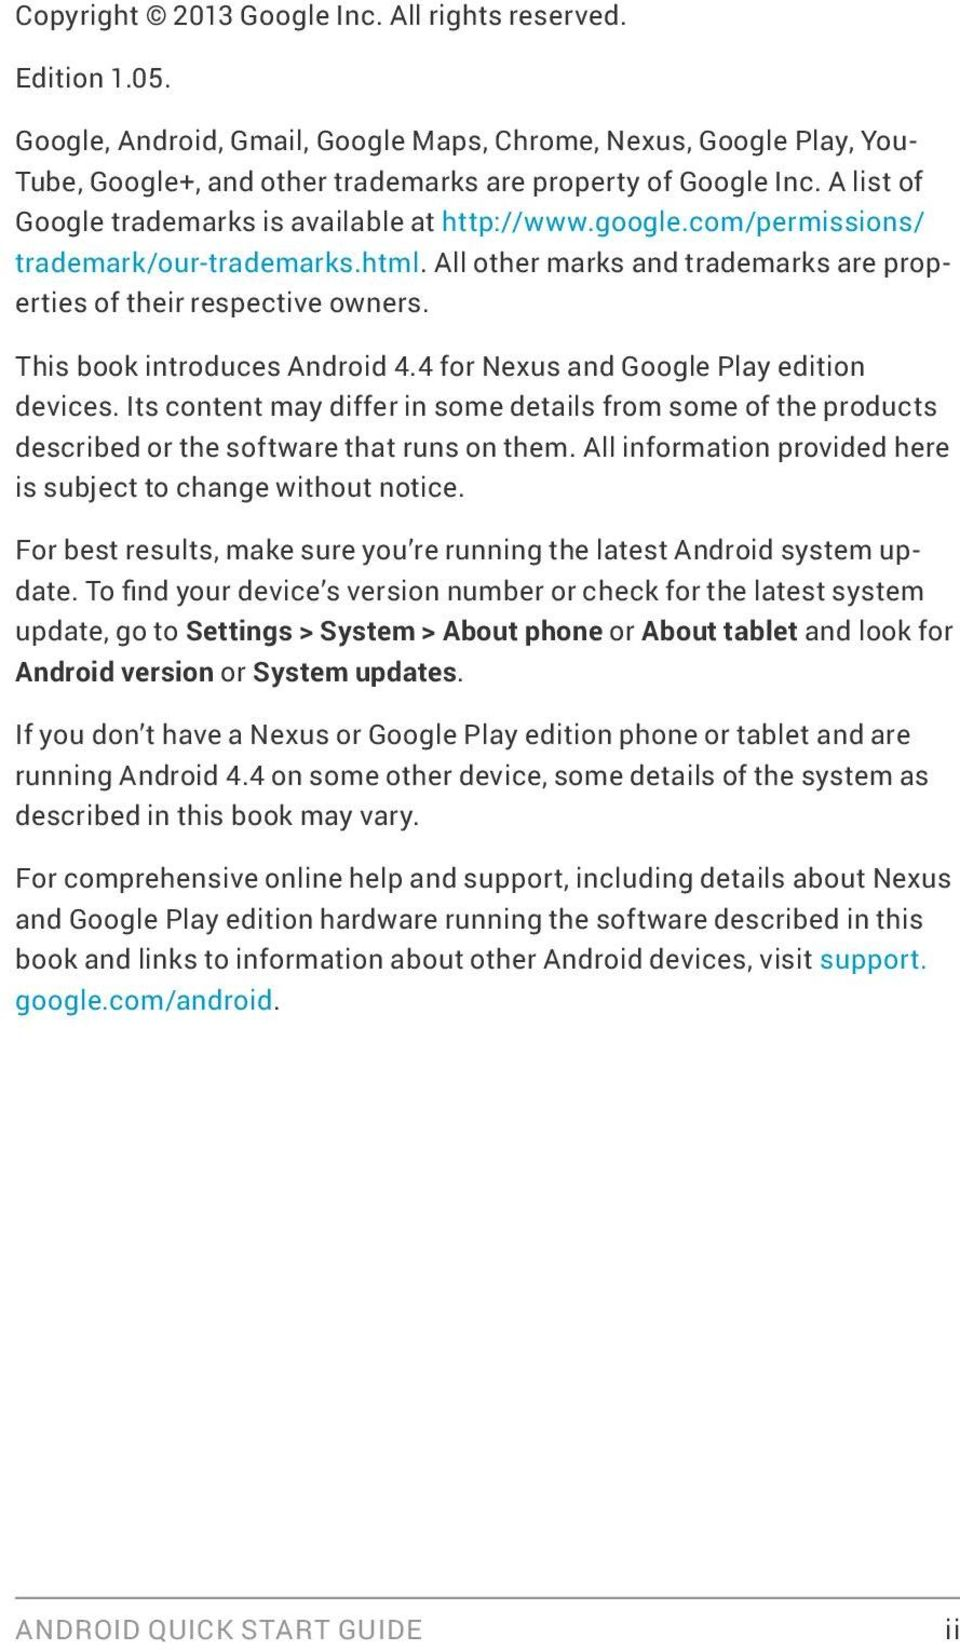 This book introduces Android 4.4 for Nexus and Google Play edition devices. Its content may differ in some details from some of the products described or the software that runs on them.